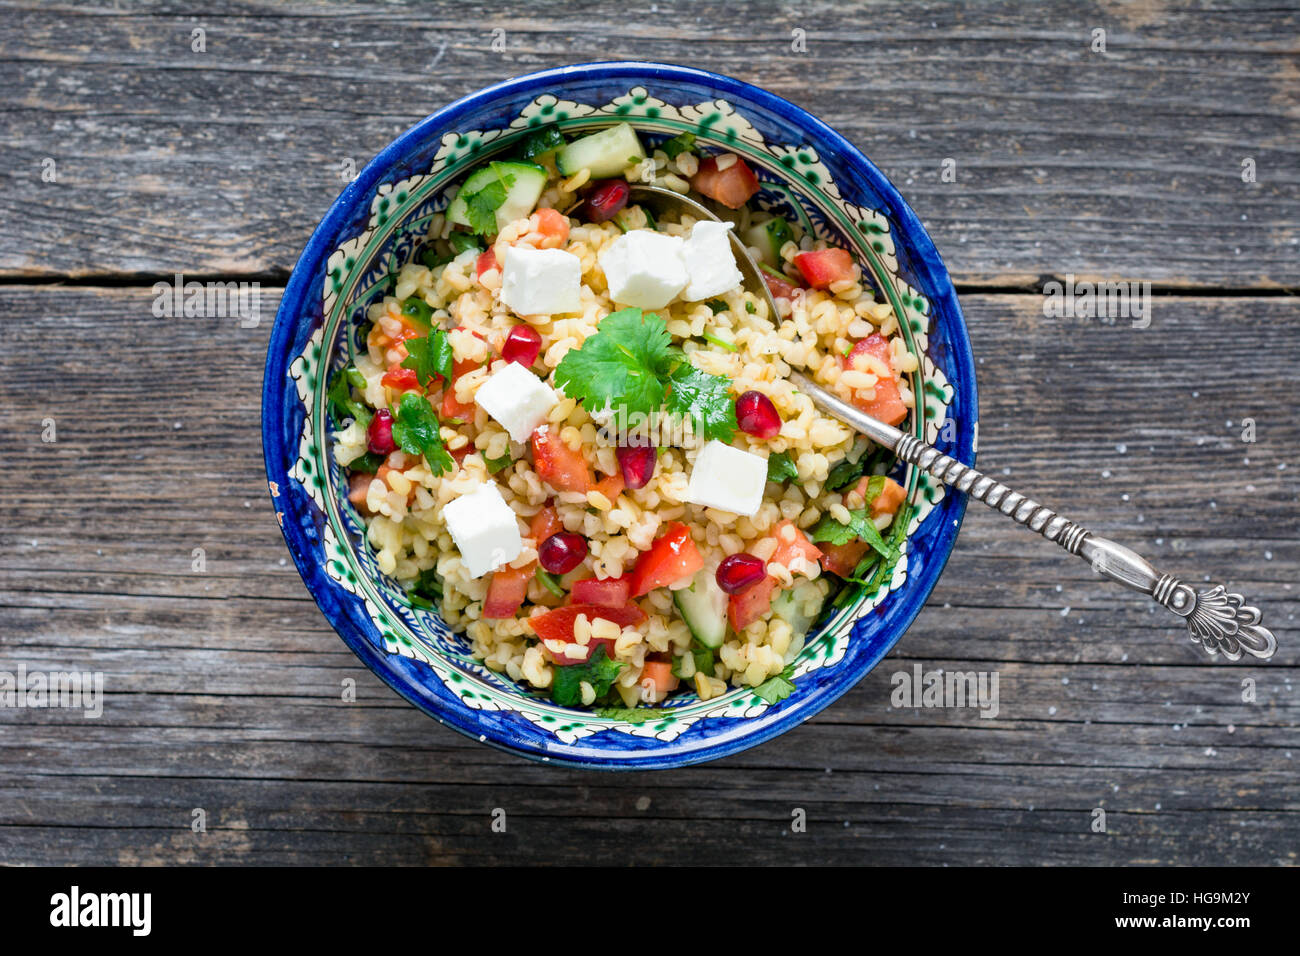 Tabbouleh salad with soft white cheese and pomegranate seeds in bowl on wooden background - Stock Image